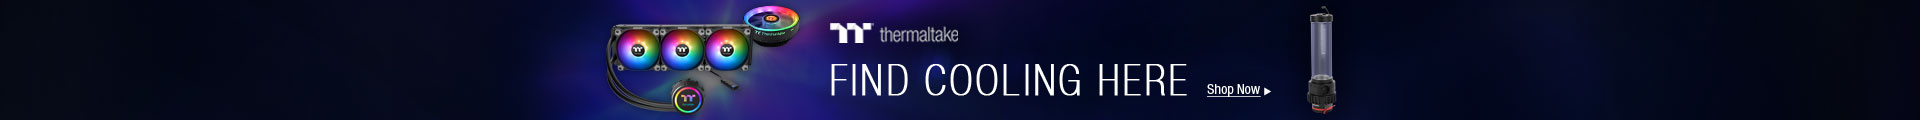 Thermaltake Find Cooling Here